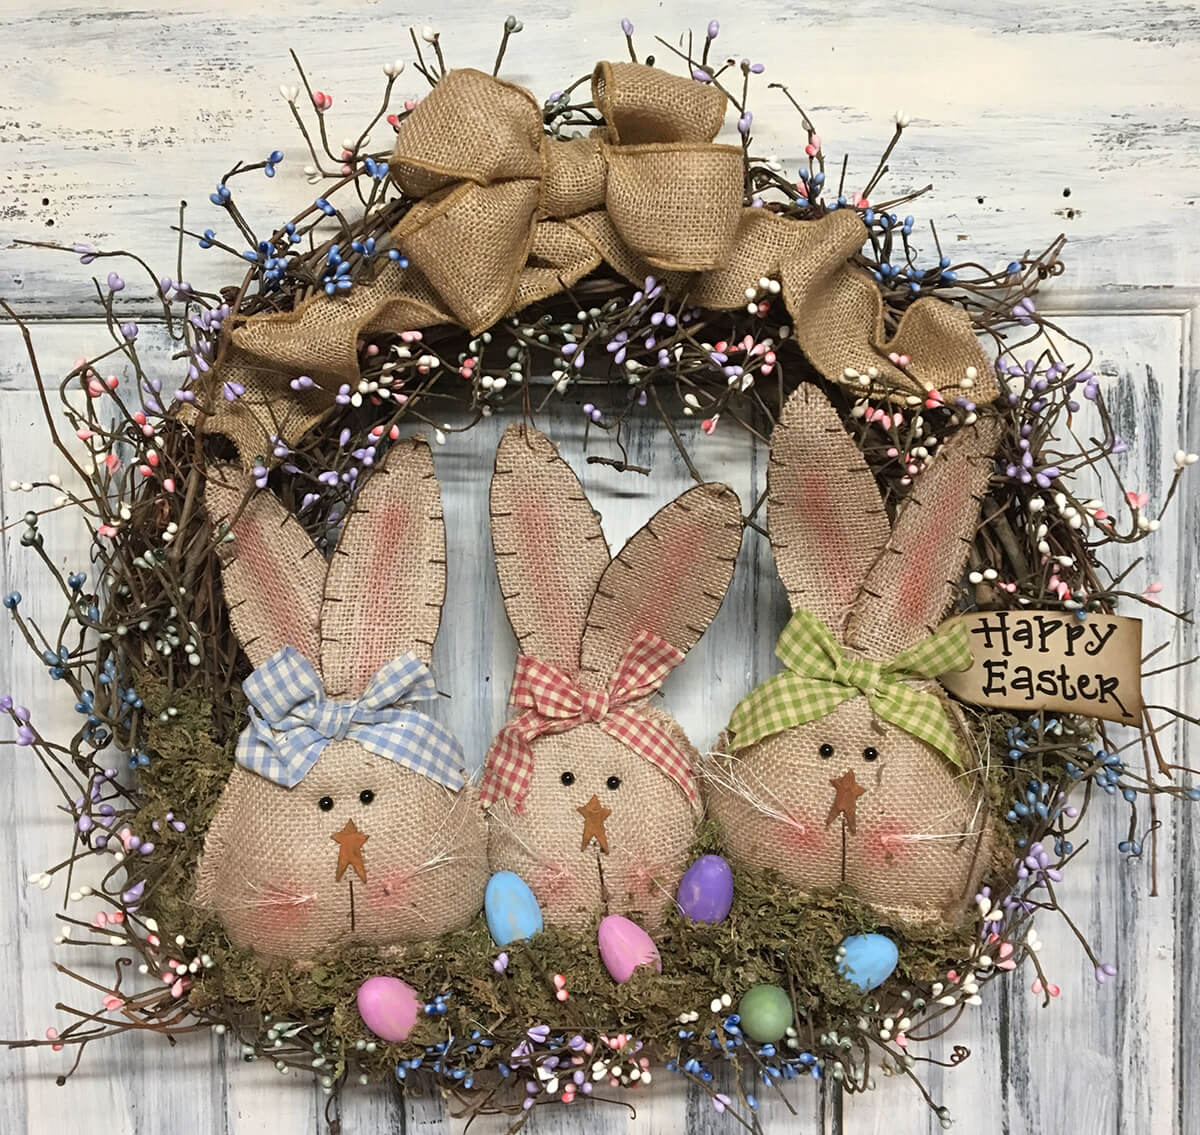 Primitive Burlap-bunnies and Bows with Pastel-pips Wreath